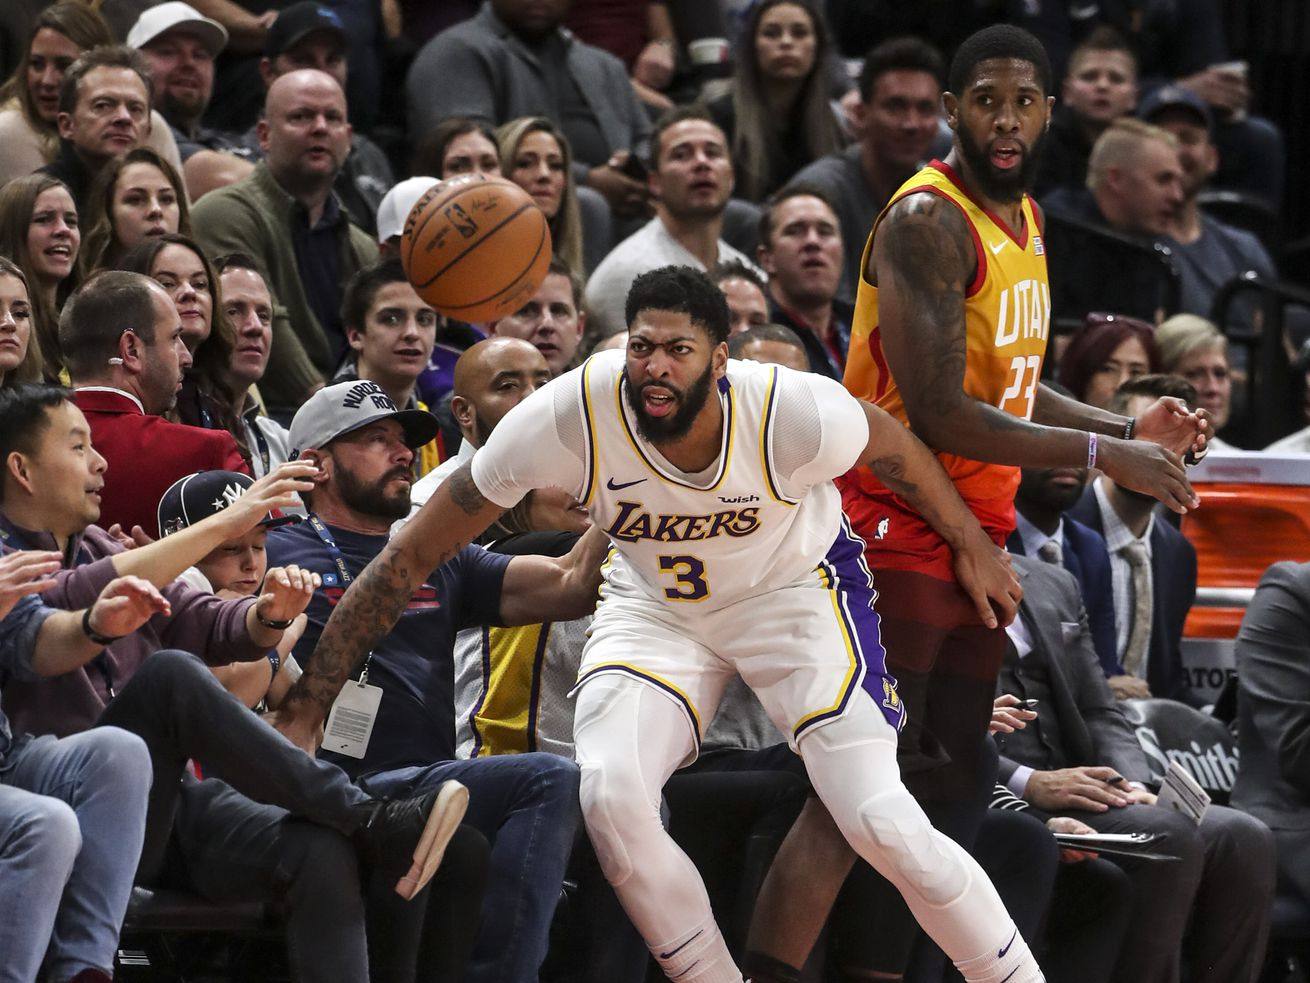 Los Angeles Lakers forward Anthony Davis (3) crashes out of bounds with Utah Jazz forward Royce O'Neale (23) during an NBA basketball game at Vivint Arena in Salt Lake City on Wednesday, Dec. 4, 2019.